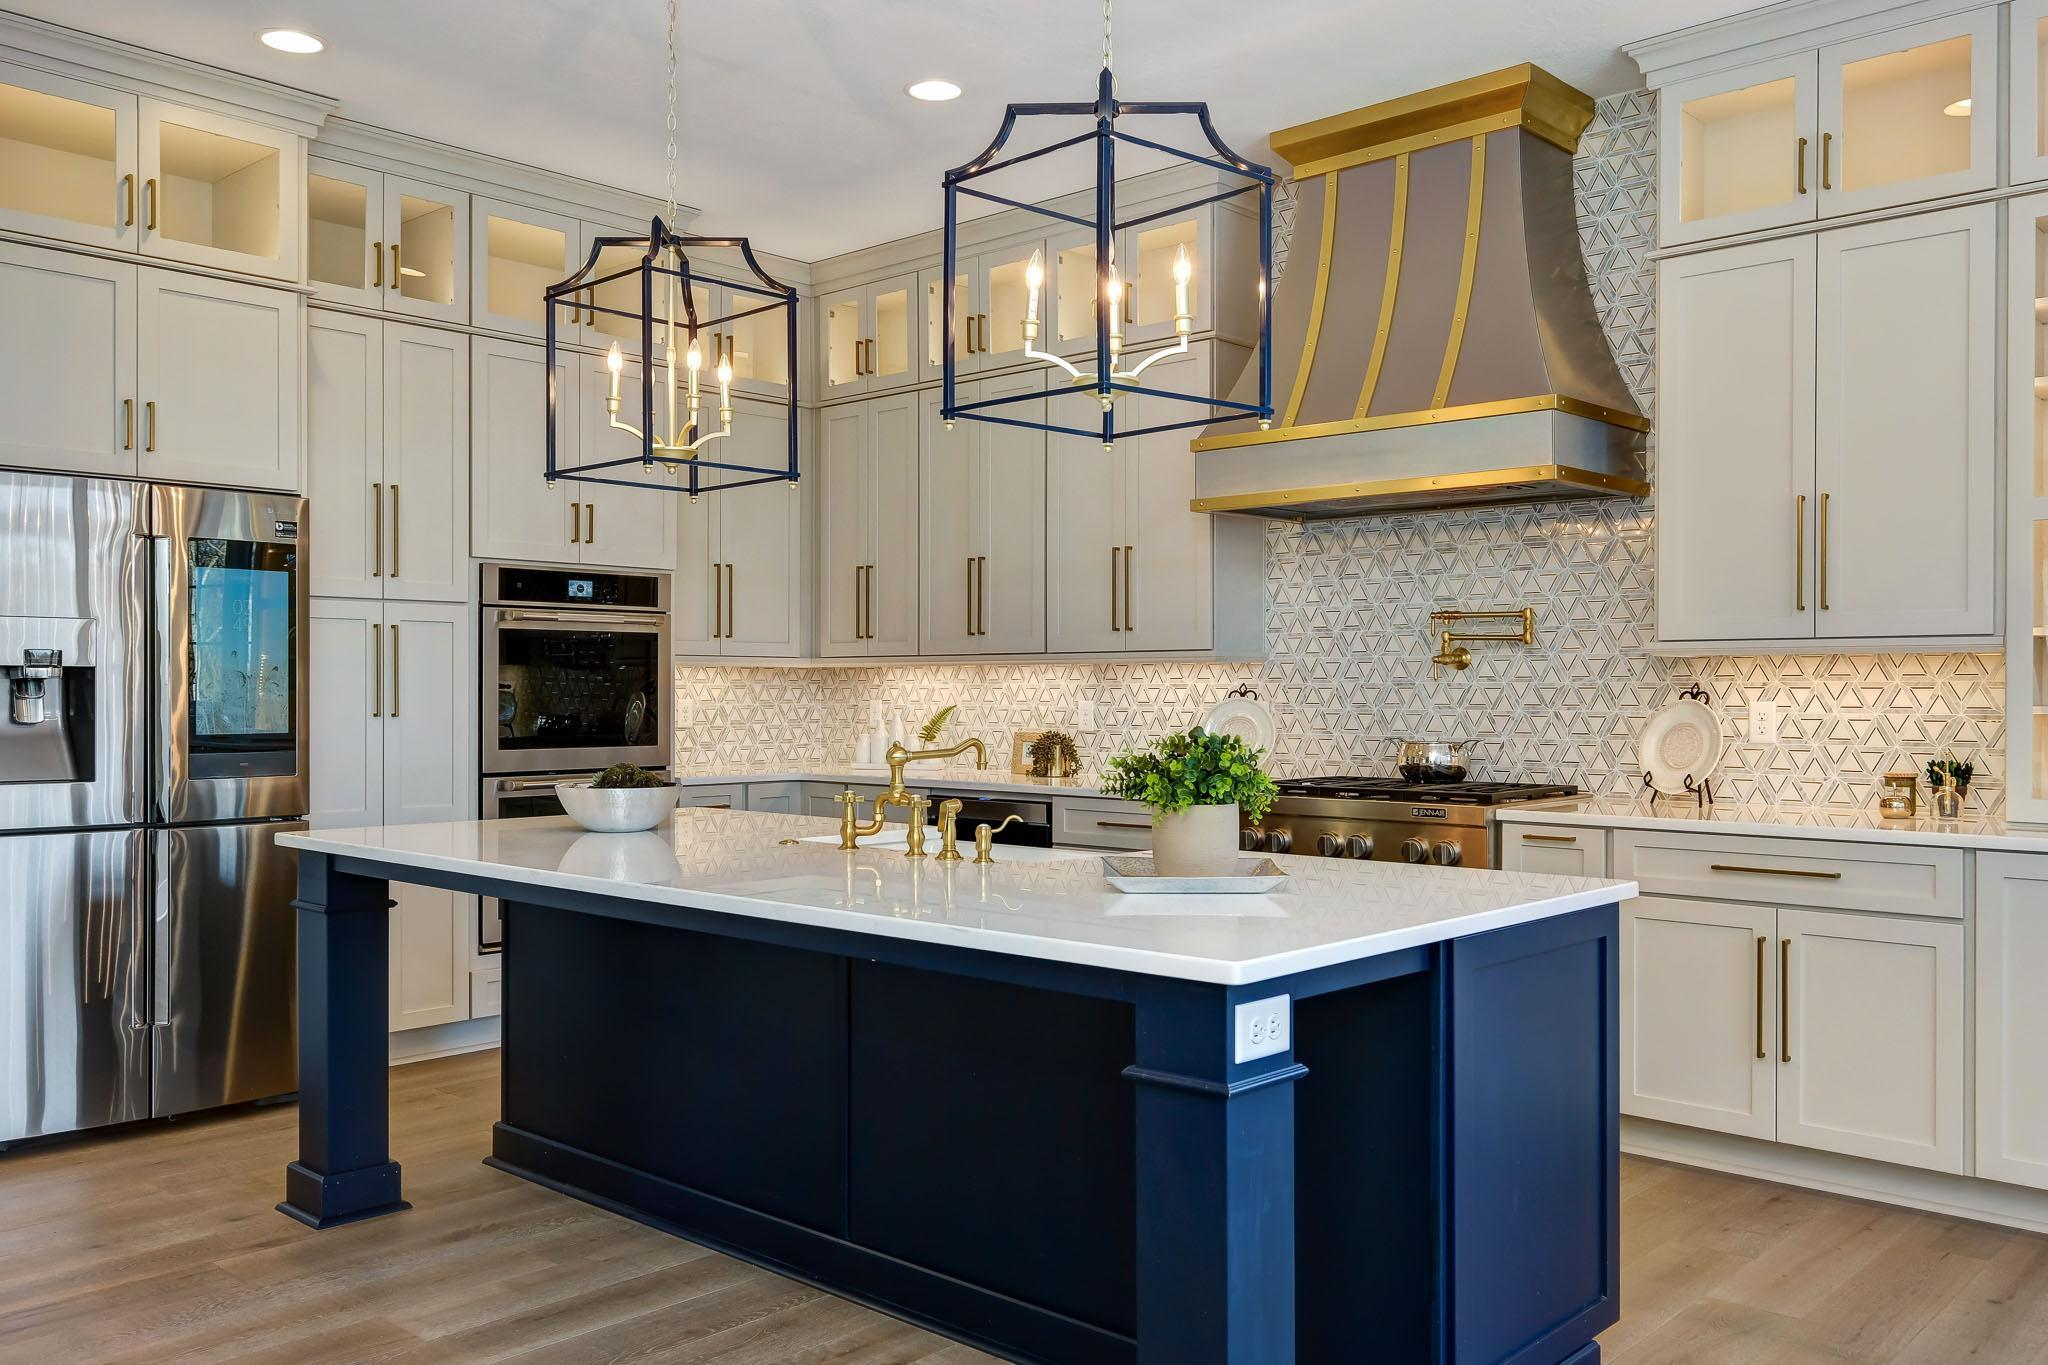 Kitchen featured in the Aspen By Infinity Custom Homes in Pittsburgh, PA